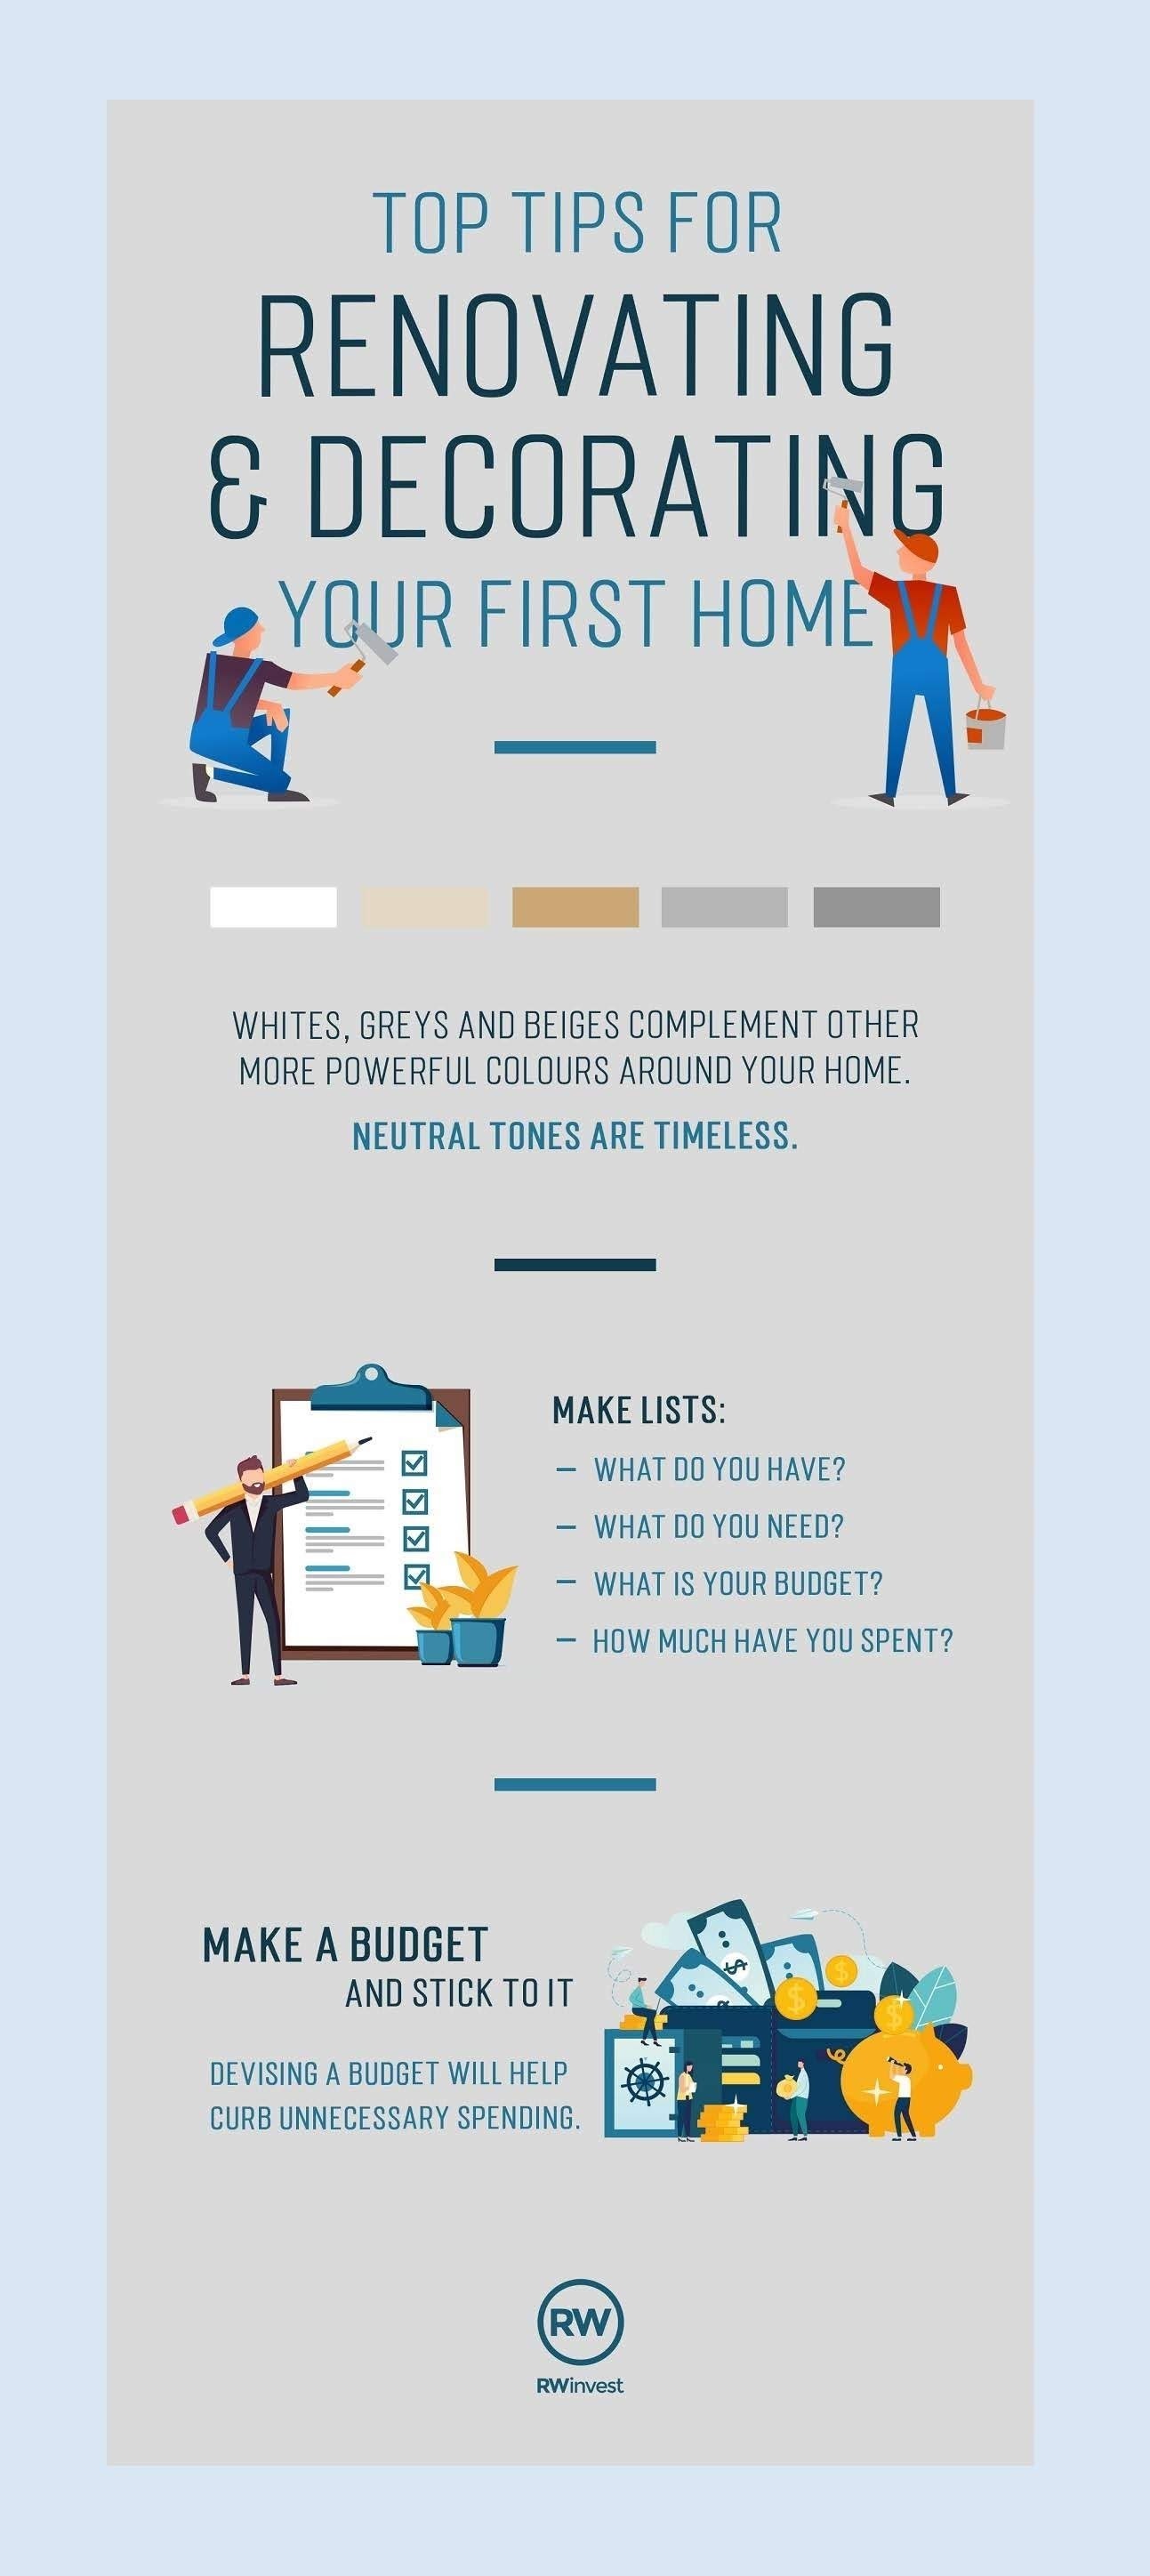 Tips for renovating and decorating your home #infographic